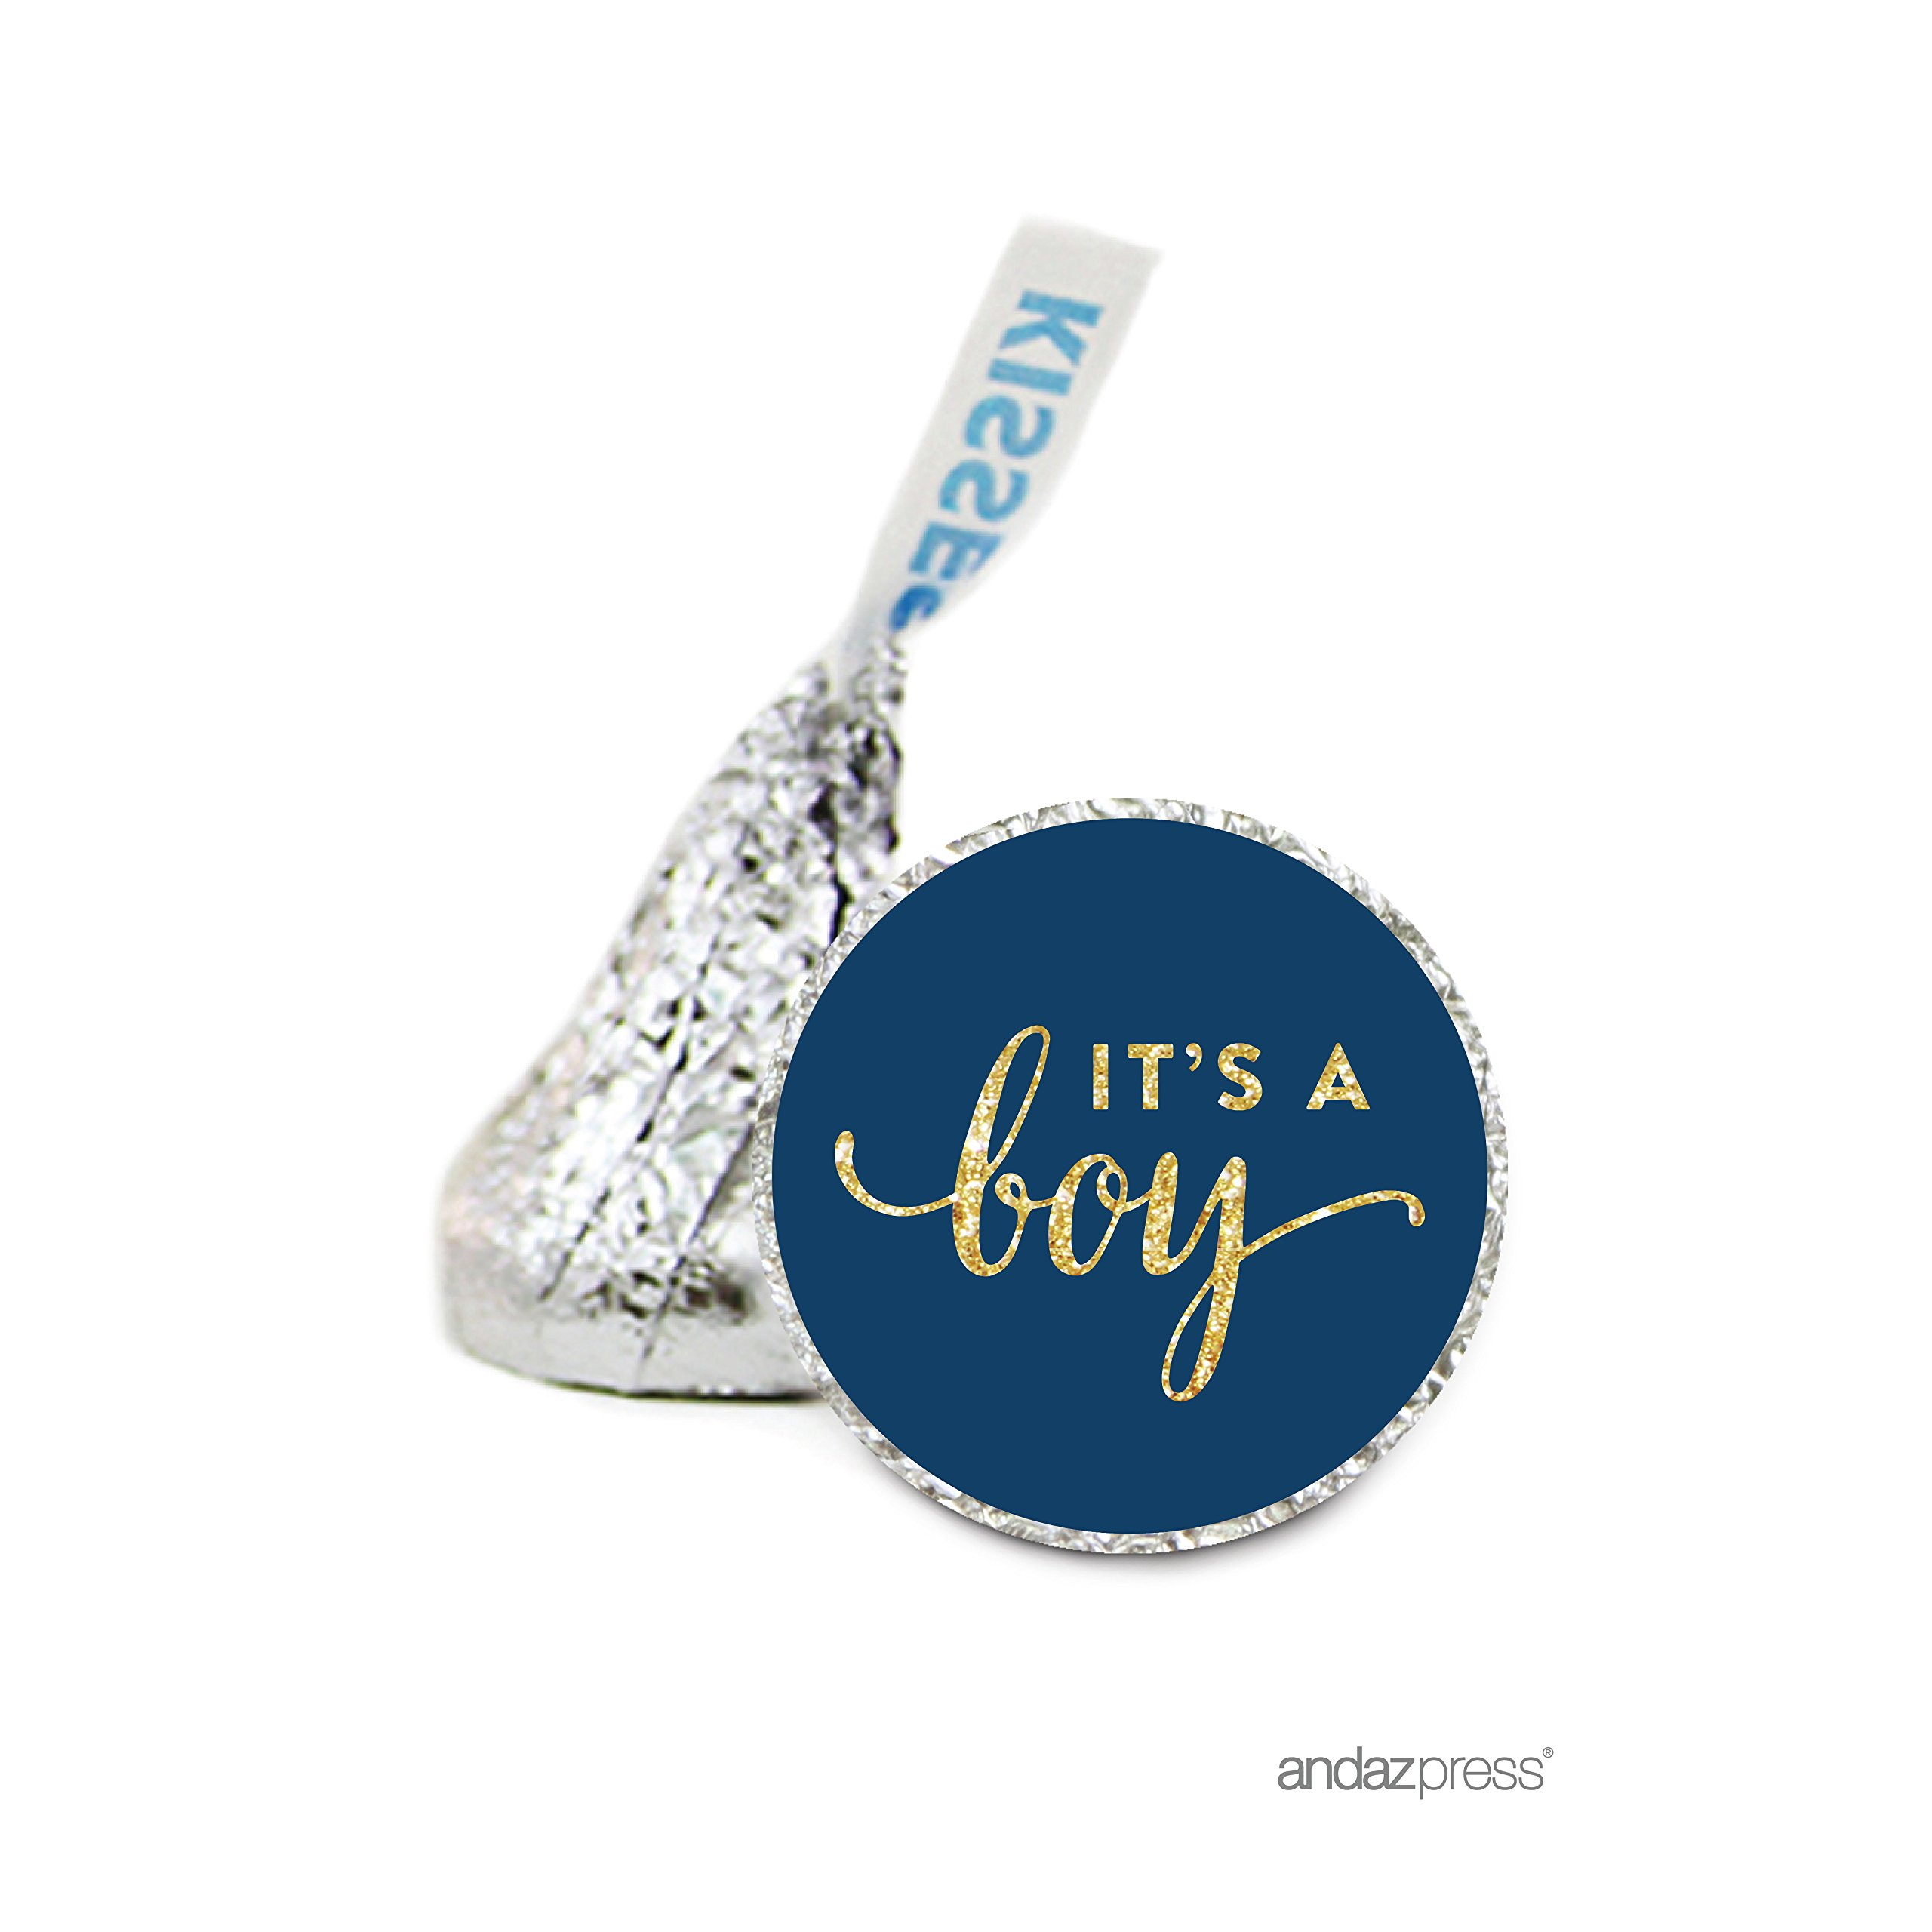 Andaz Press Chocolate Drop Labels Stickers Single, Baby Shower, It's a Boy Navy Blue and Gold Glitter, 216-Pack, For Hershey's Kisses Party Favors, Gifts, Decorations